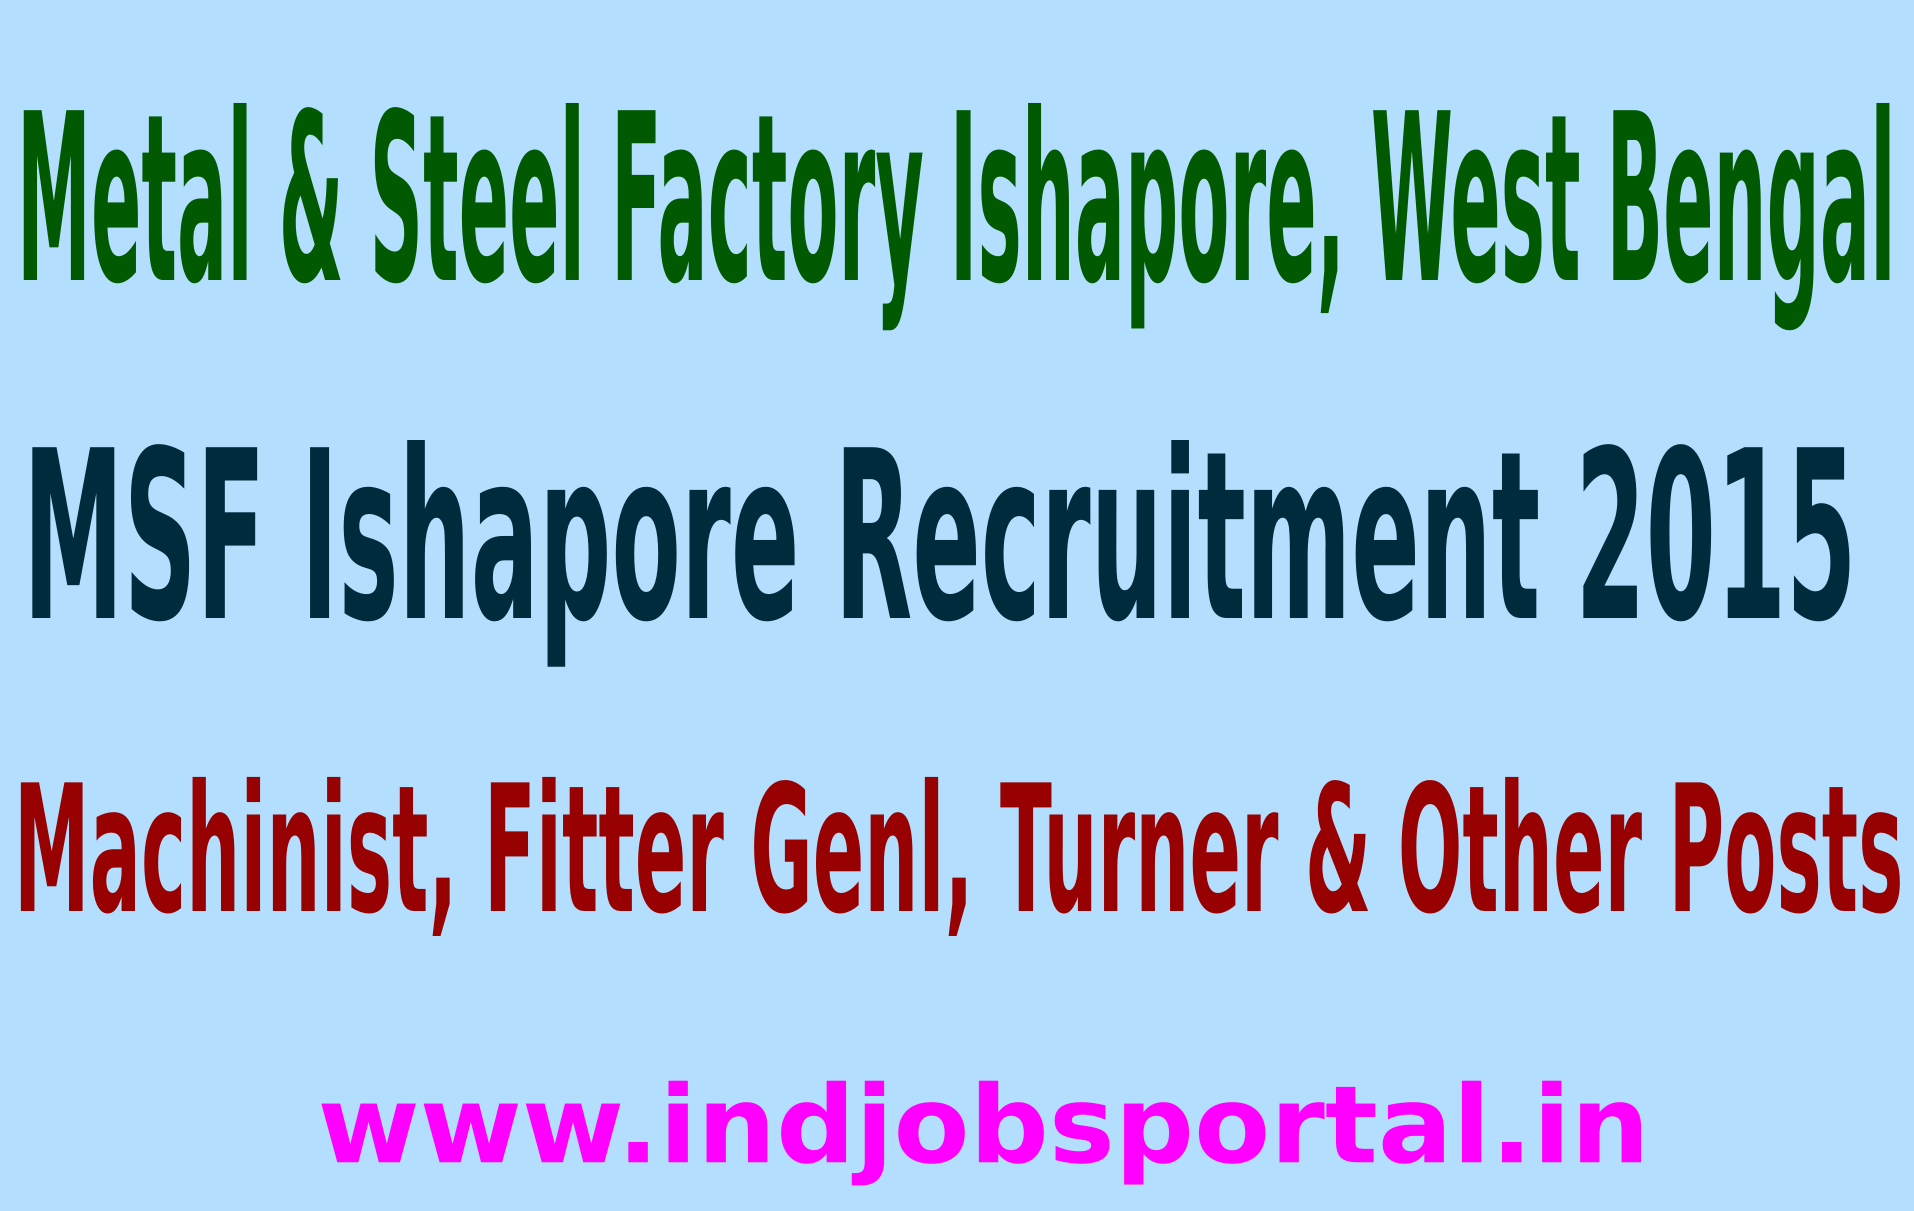 MSF Ishapore Recruitment 2015 Online Application For 208 Machinist, Fitter Genl, Turner & Other Posts